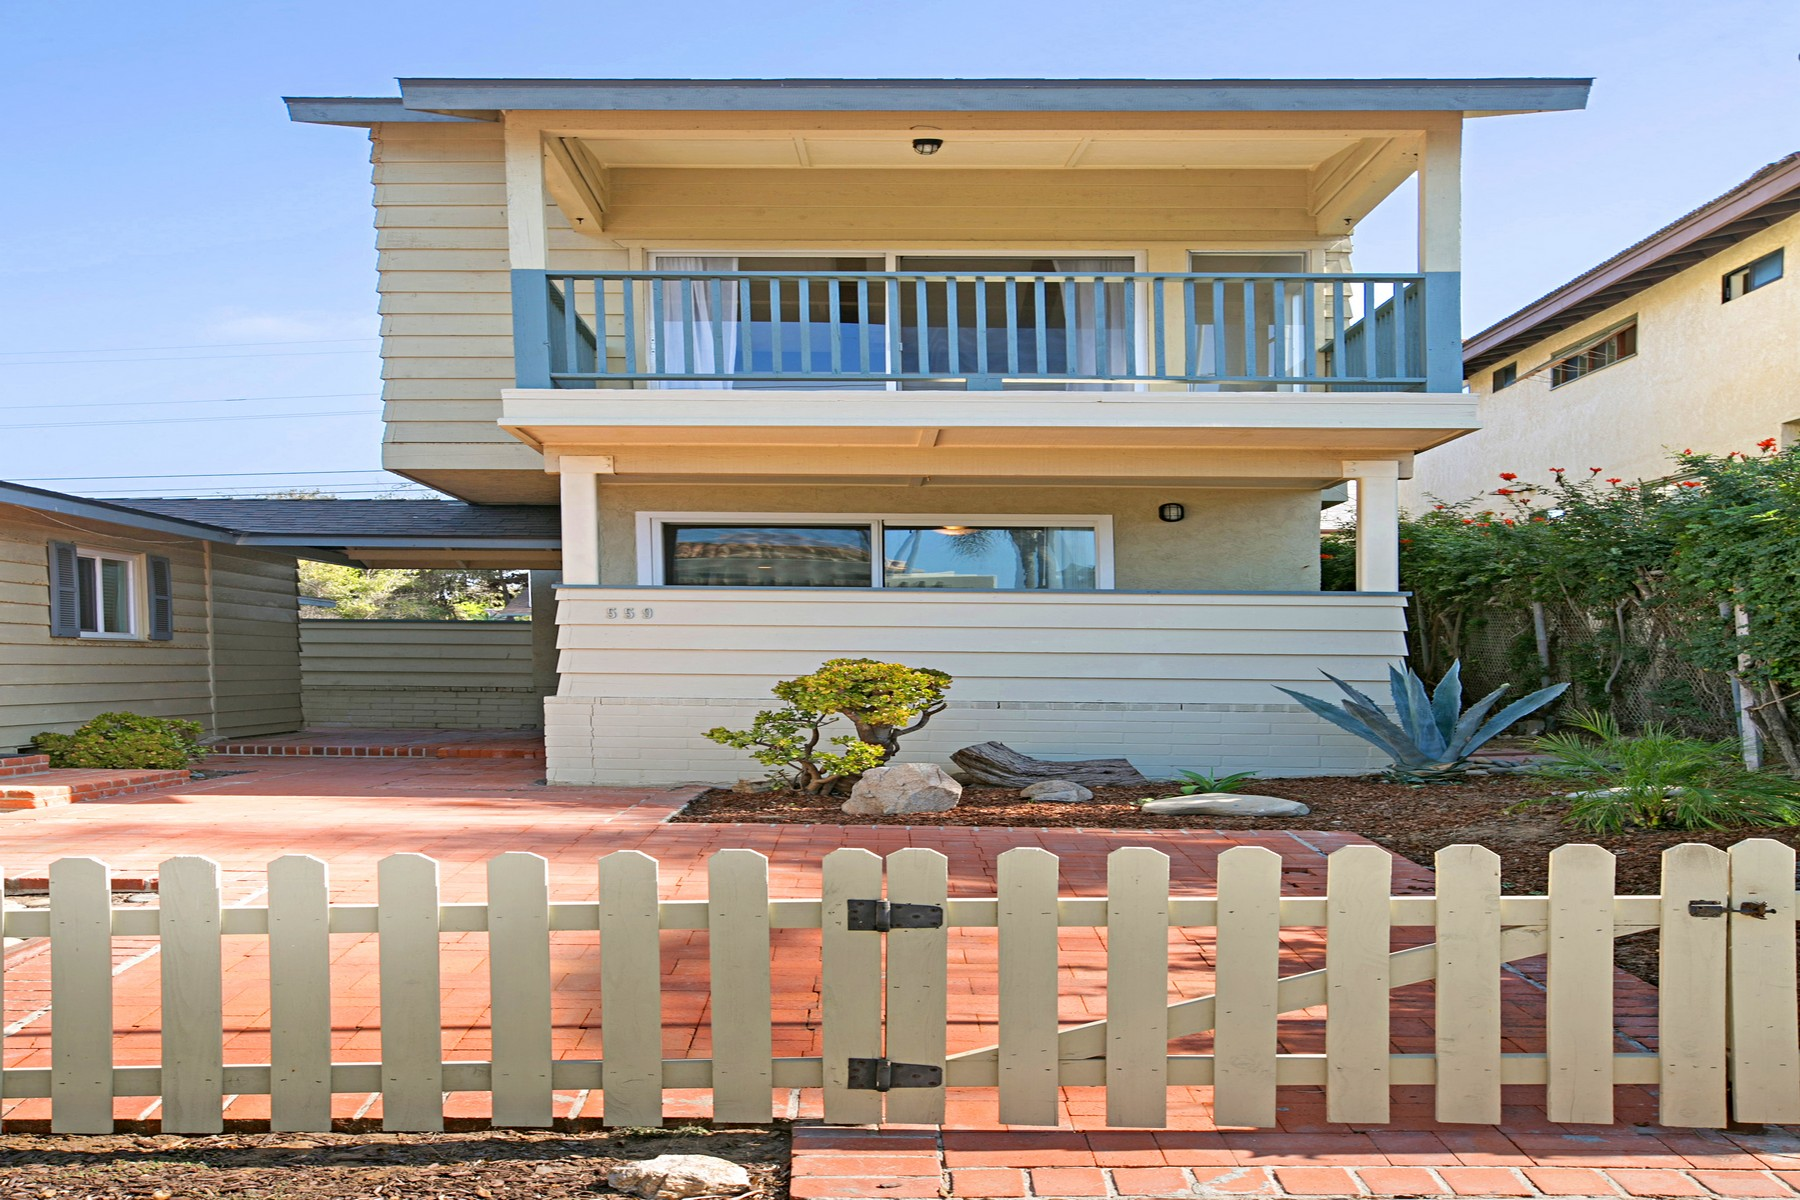 Single Family Home for Rent at 559 4th Street 559 4th Street Encinitas, California 92024 United States